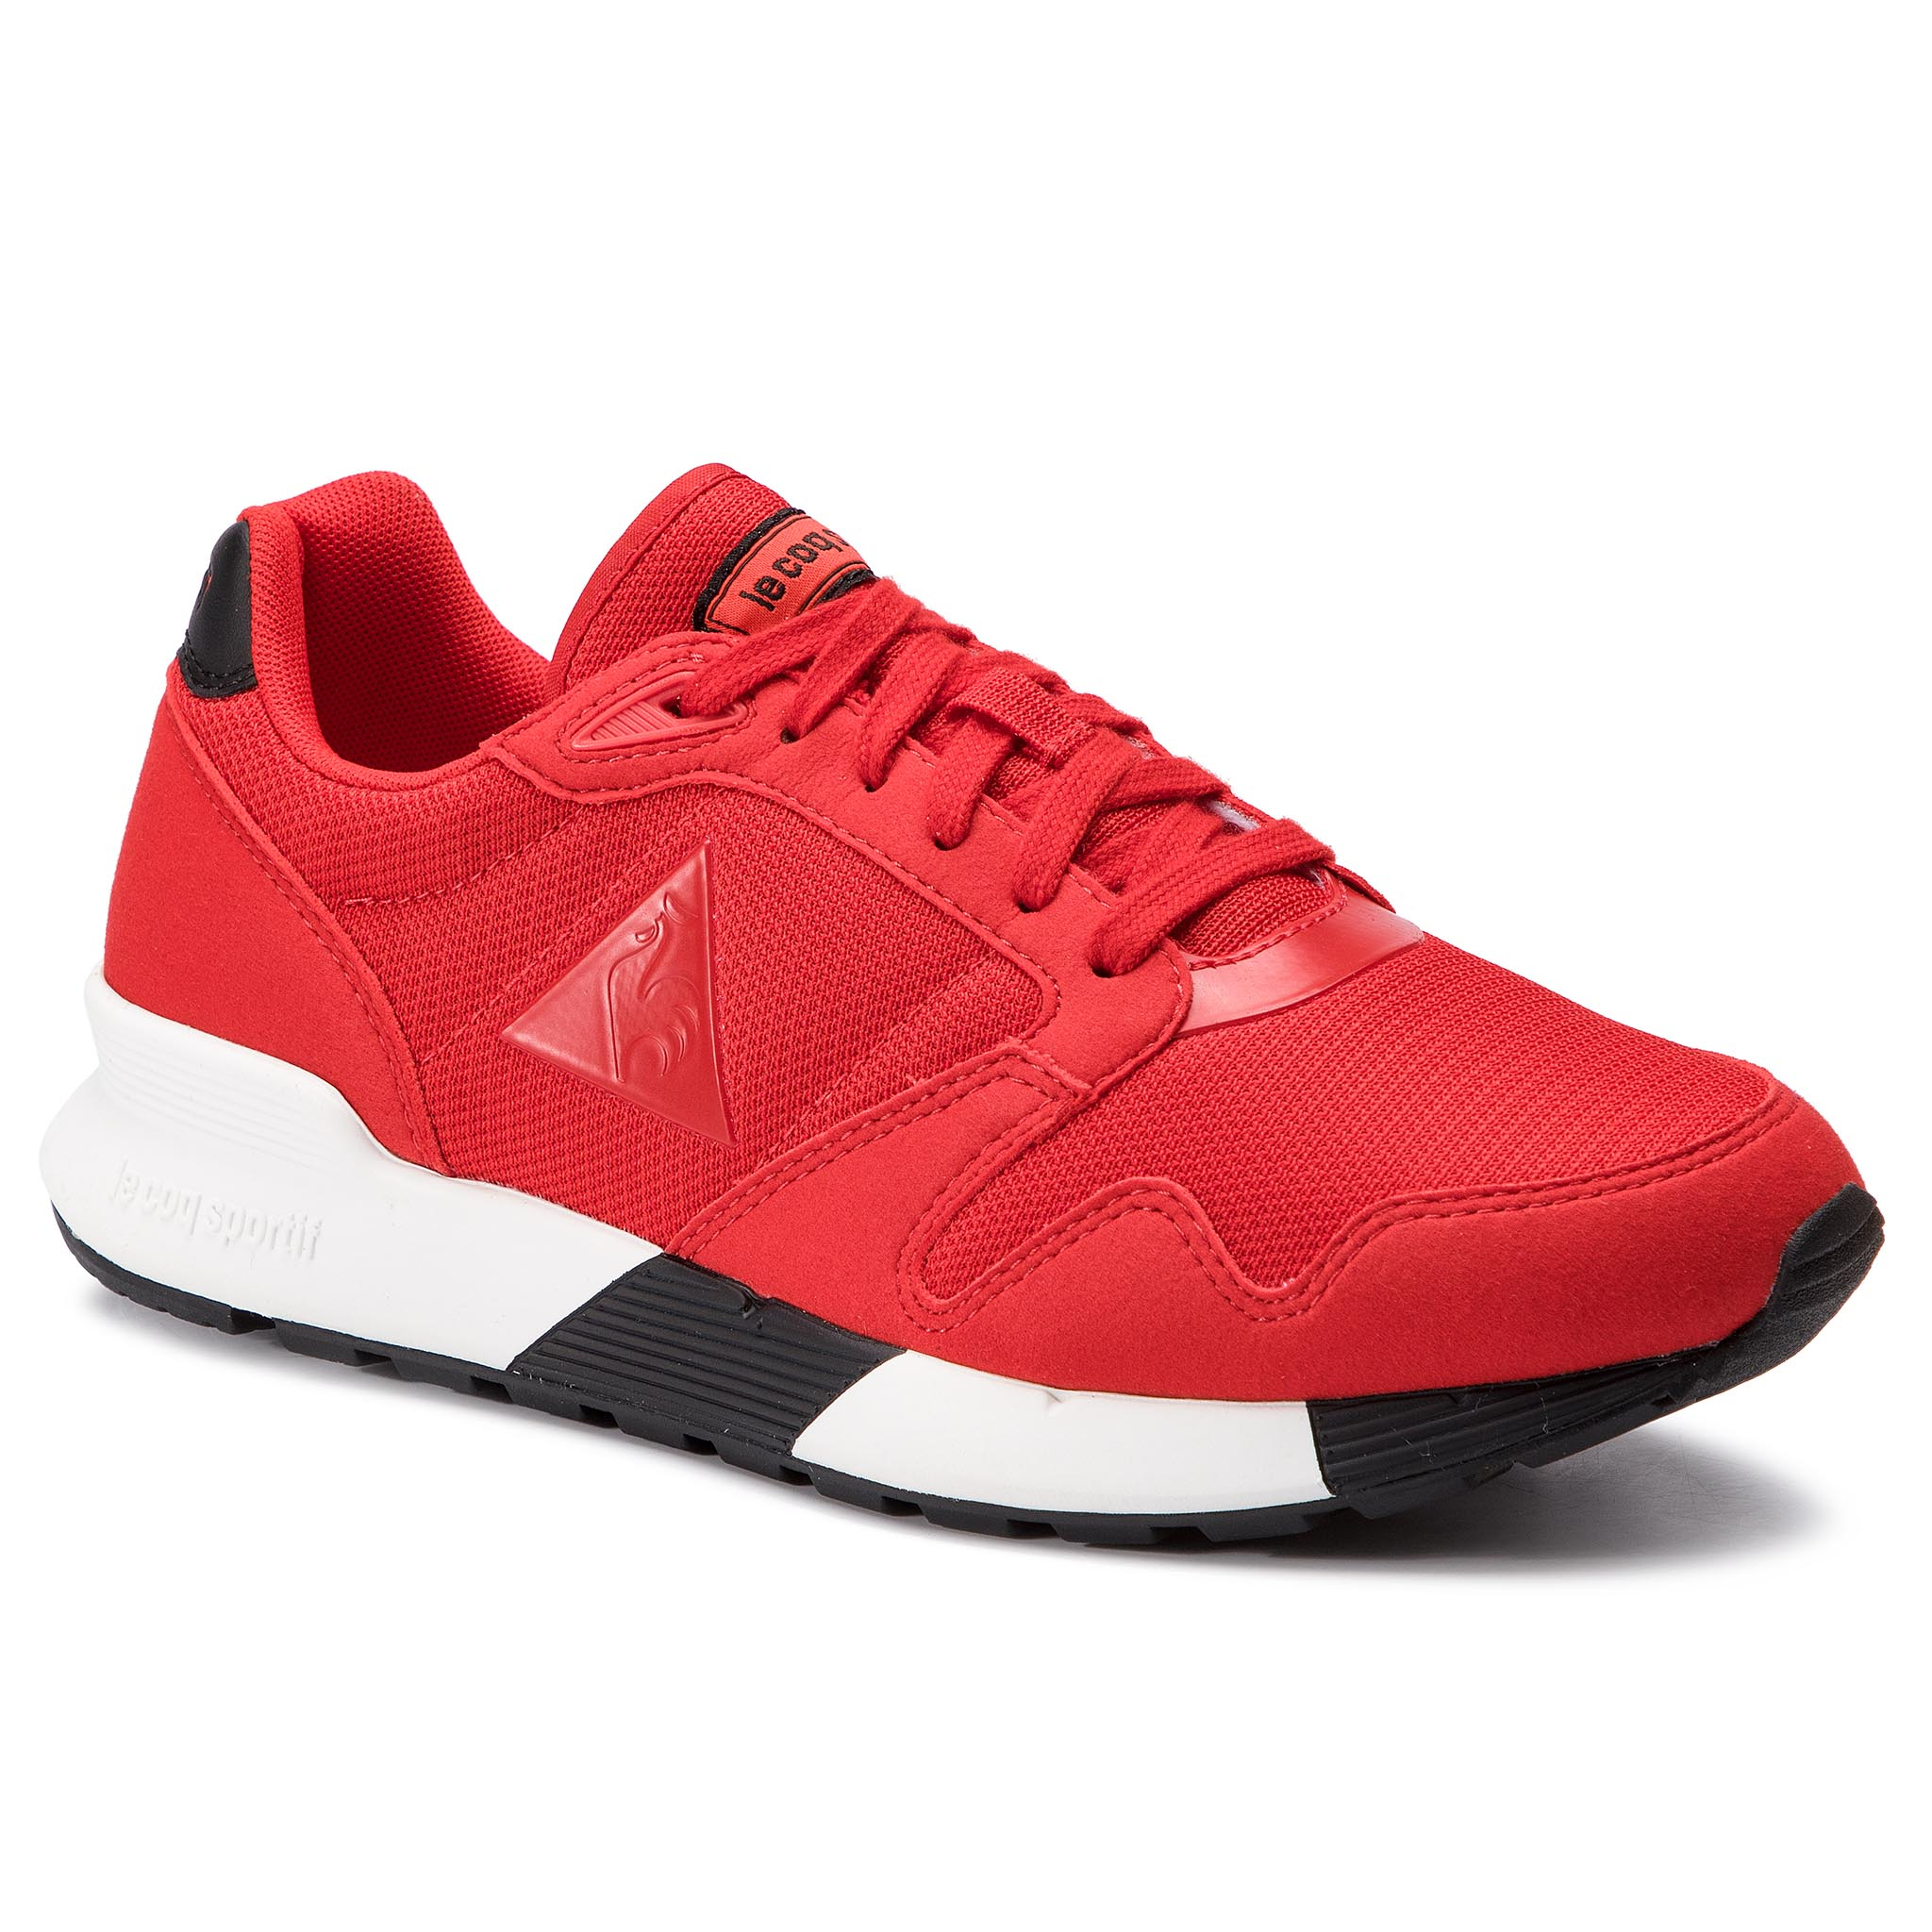 Sneakers LE COQ SPORTIF - Omega X 1910625 Pure Red/Black